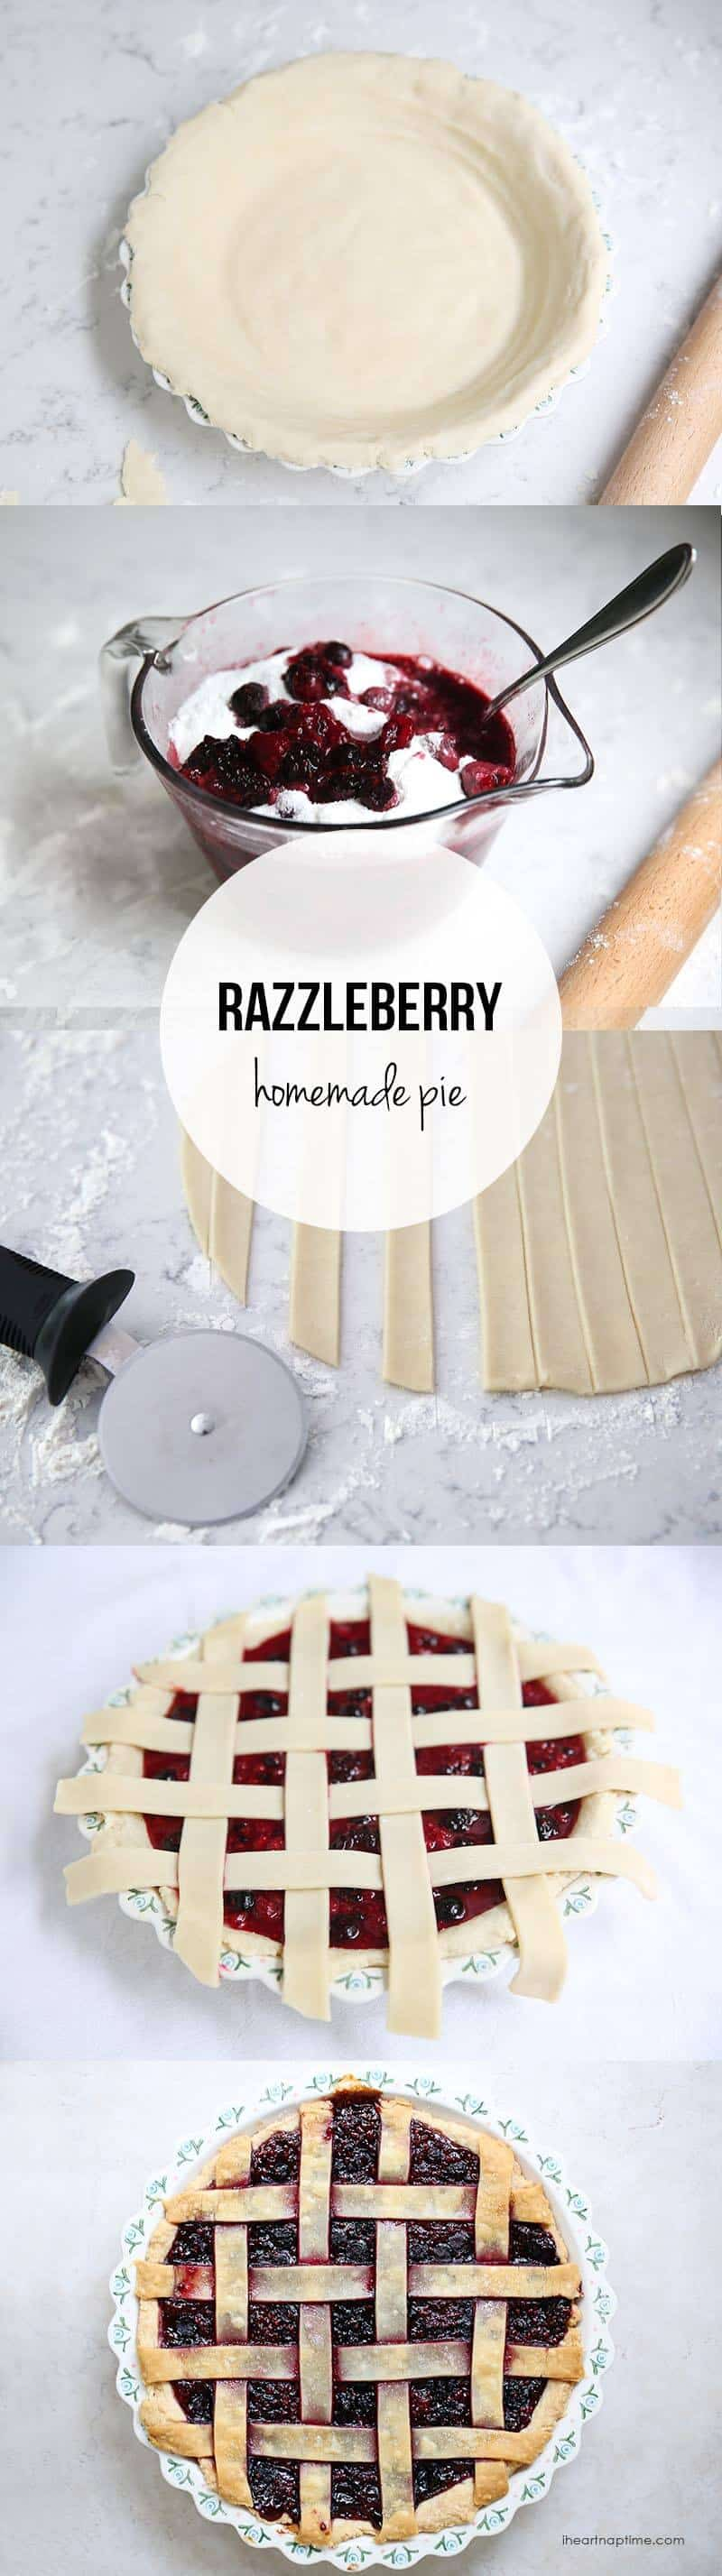 how to make homemade razzleberry pie